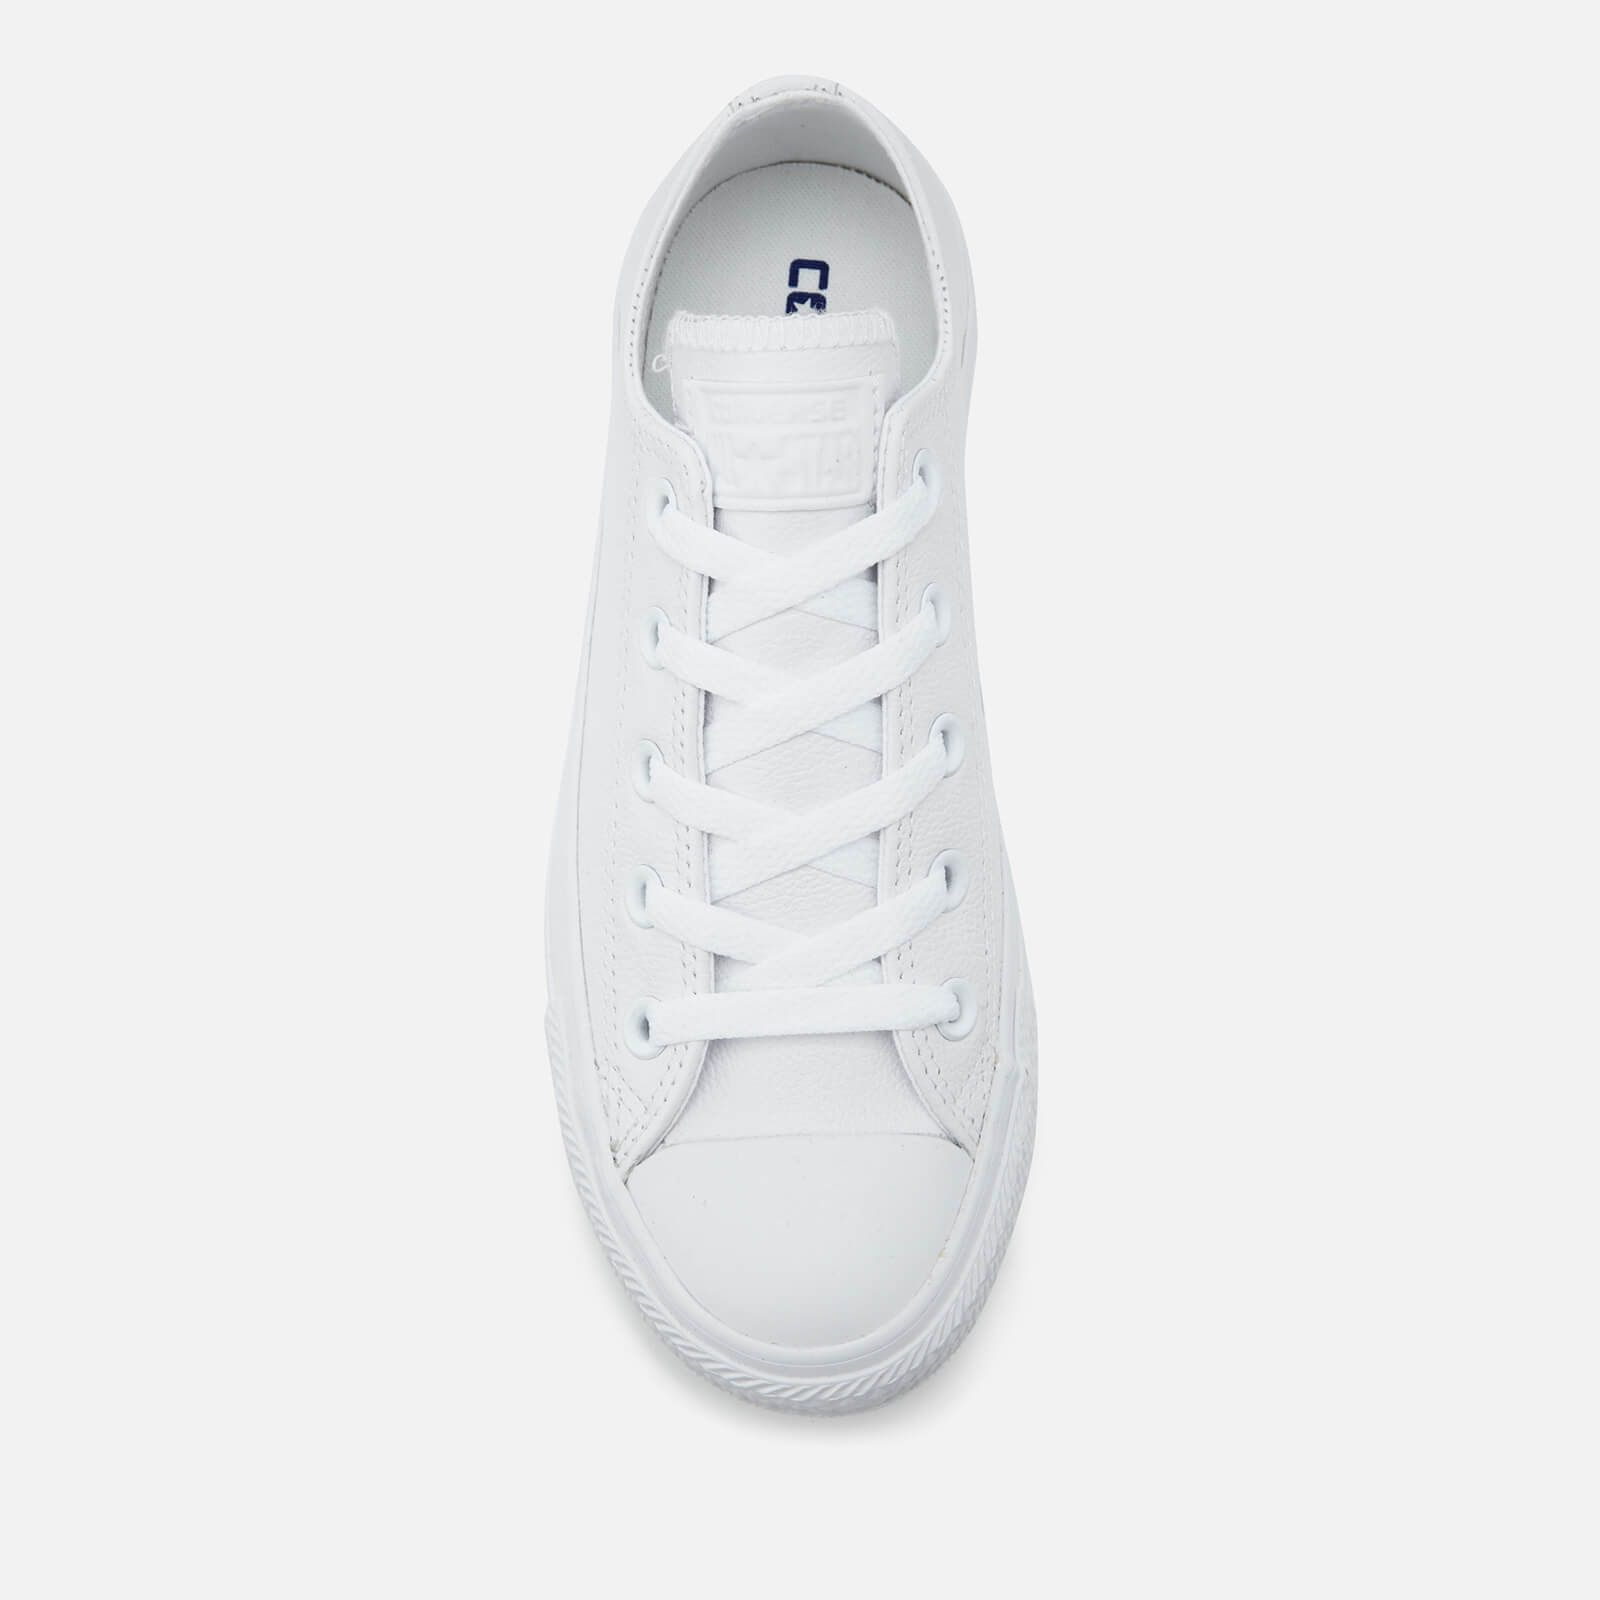 Converse Chuck Taylor All Star Ox Leather Trainers White